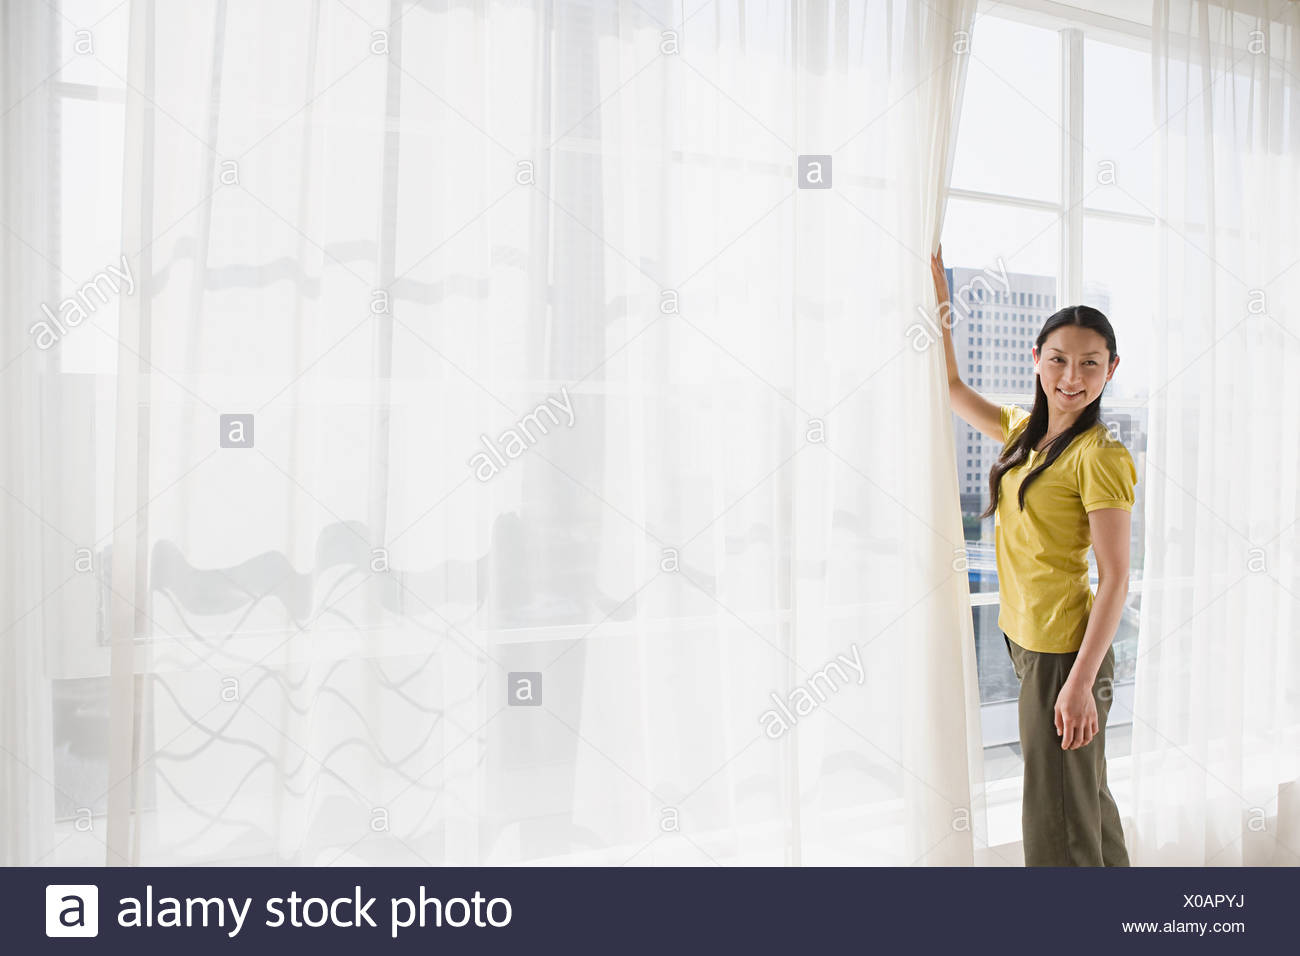 Japanese woman opening net curtains - Stock Image